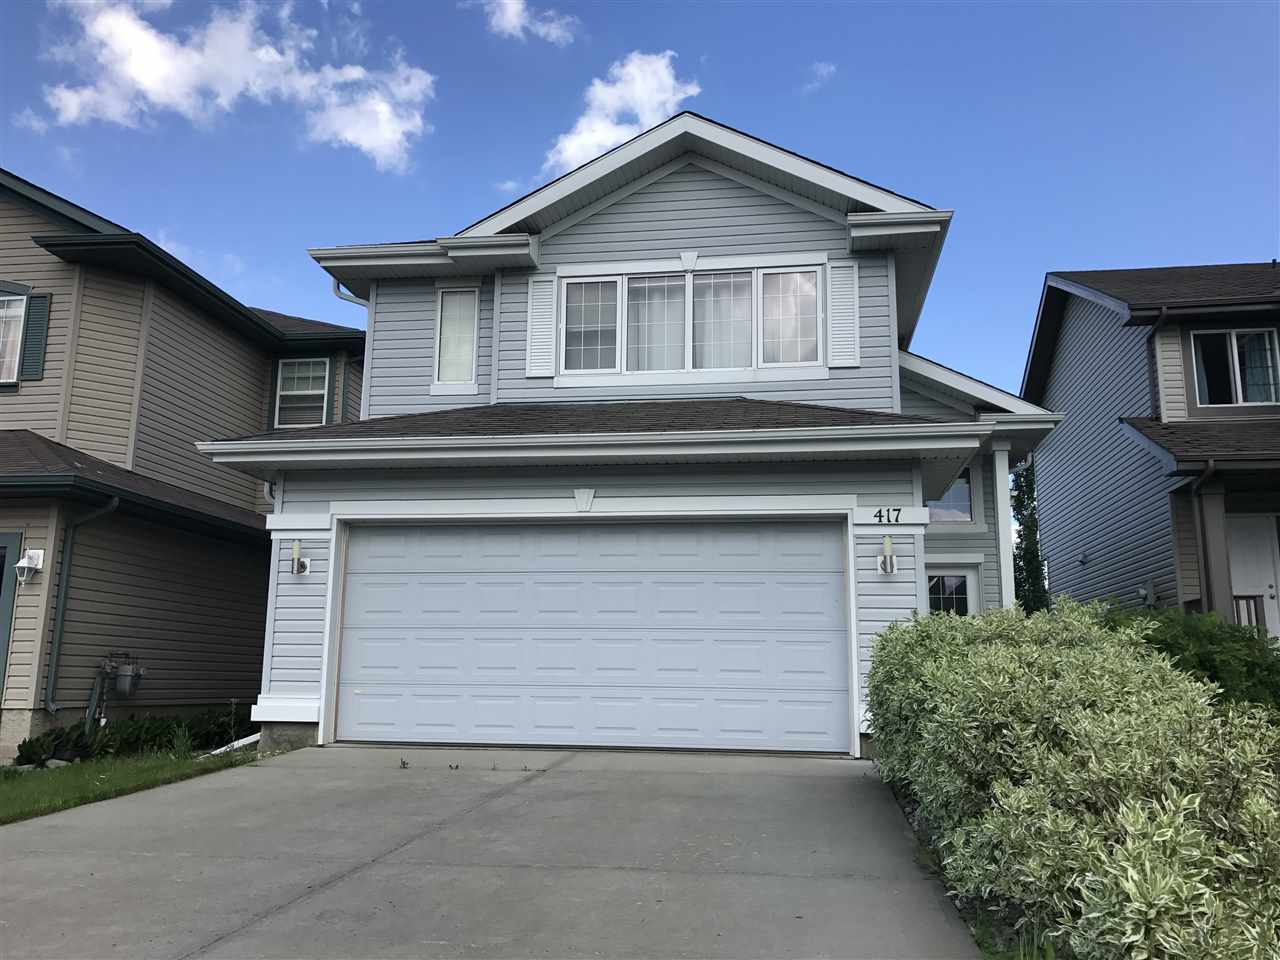 Main Photo: 417 84 Street in Edmonton: Zone 53 House for sale : MLS(r) # E4070194